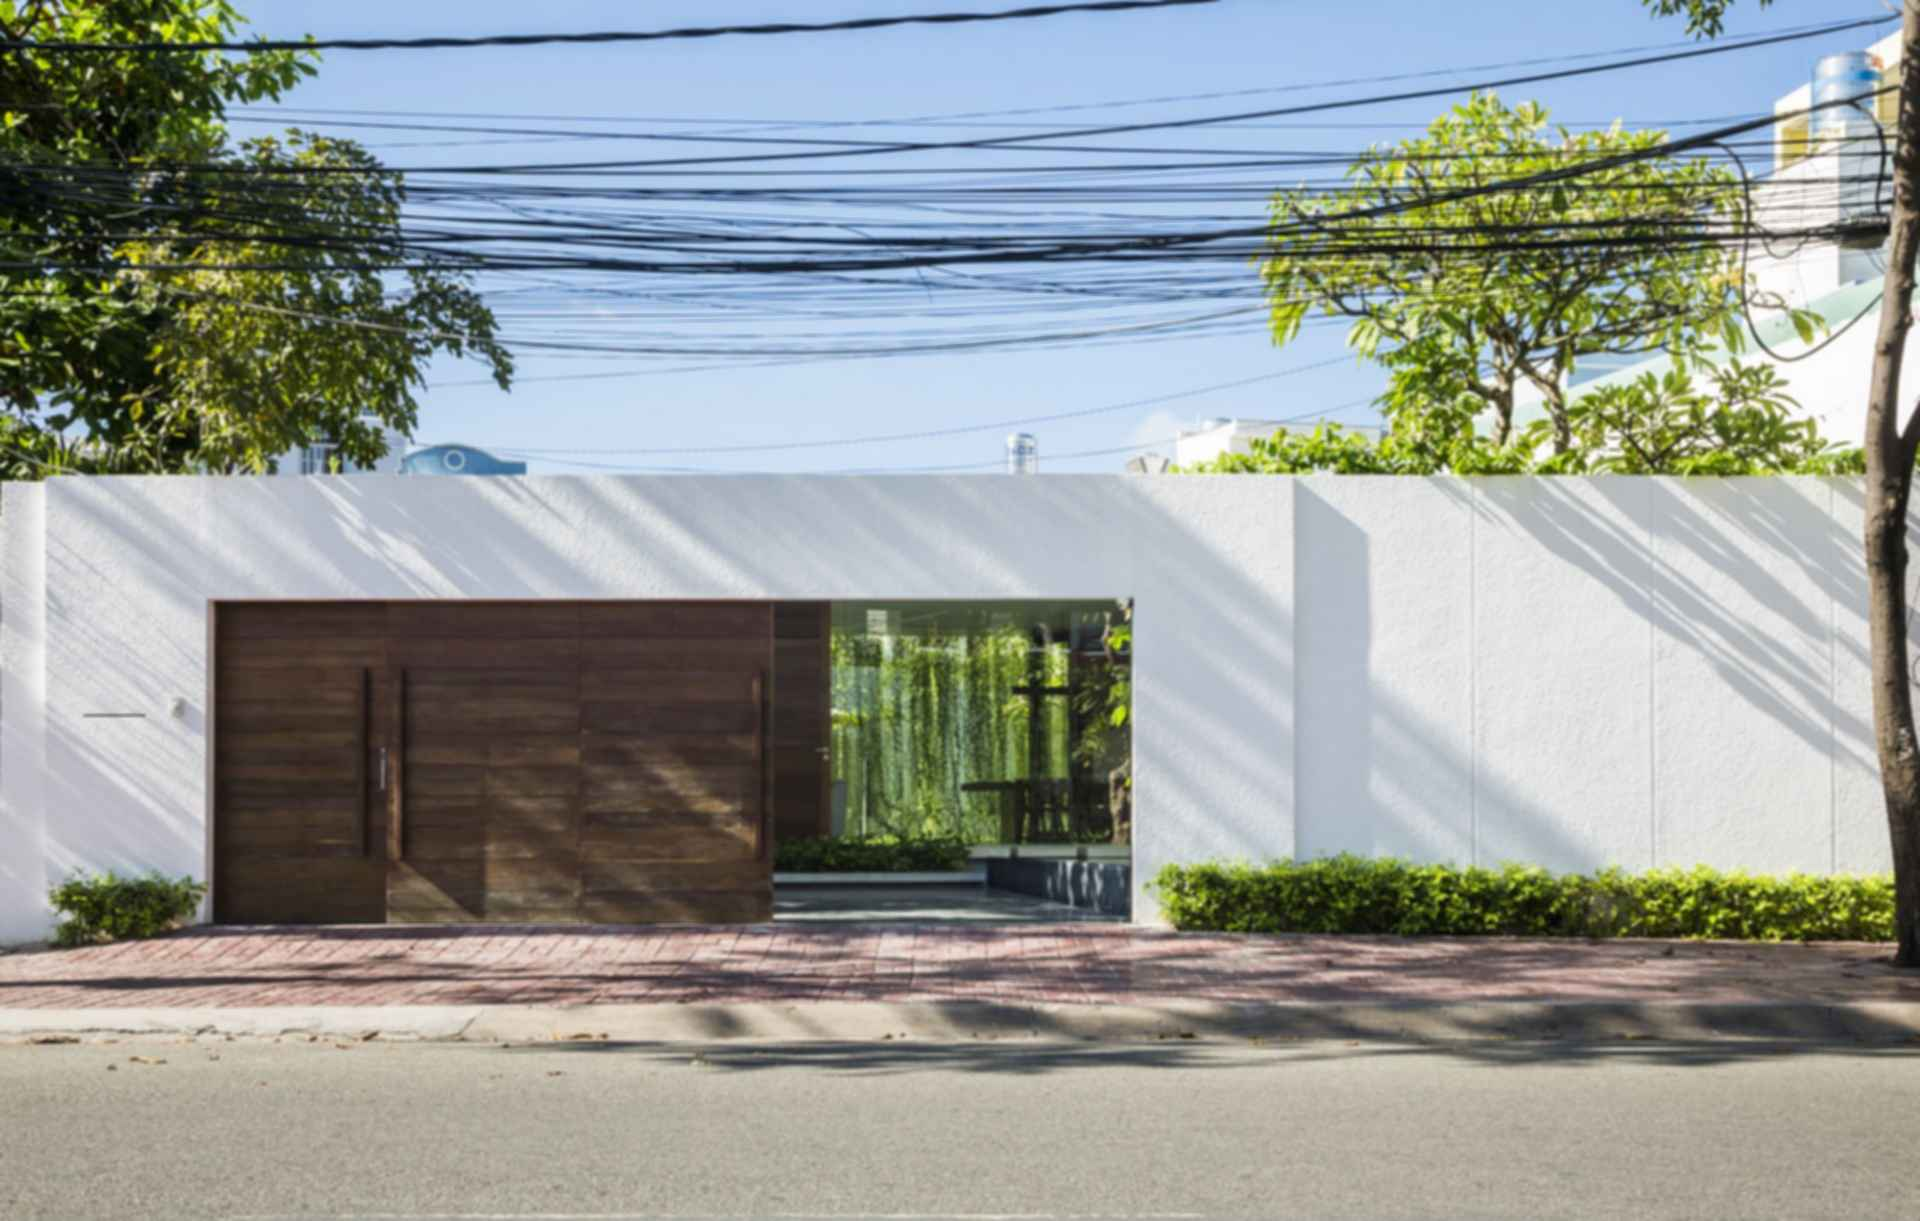 The Drawers House - Exterior/Street View